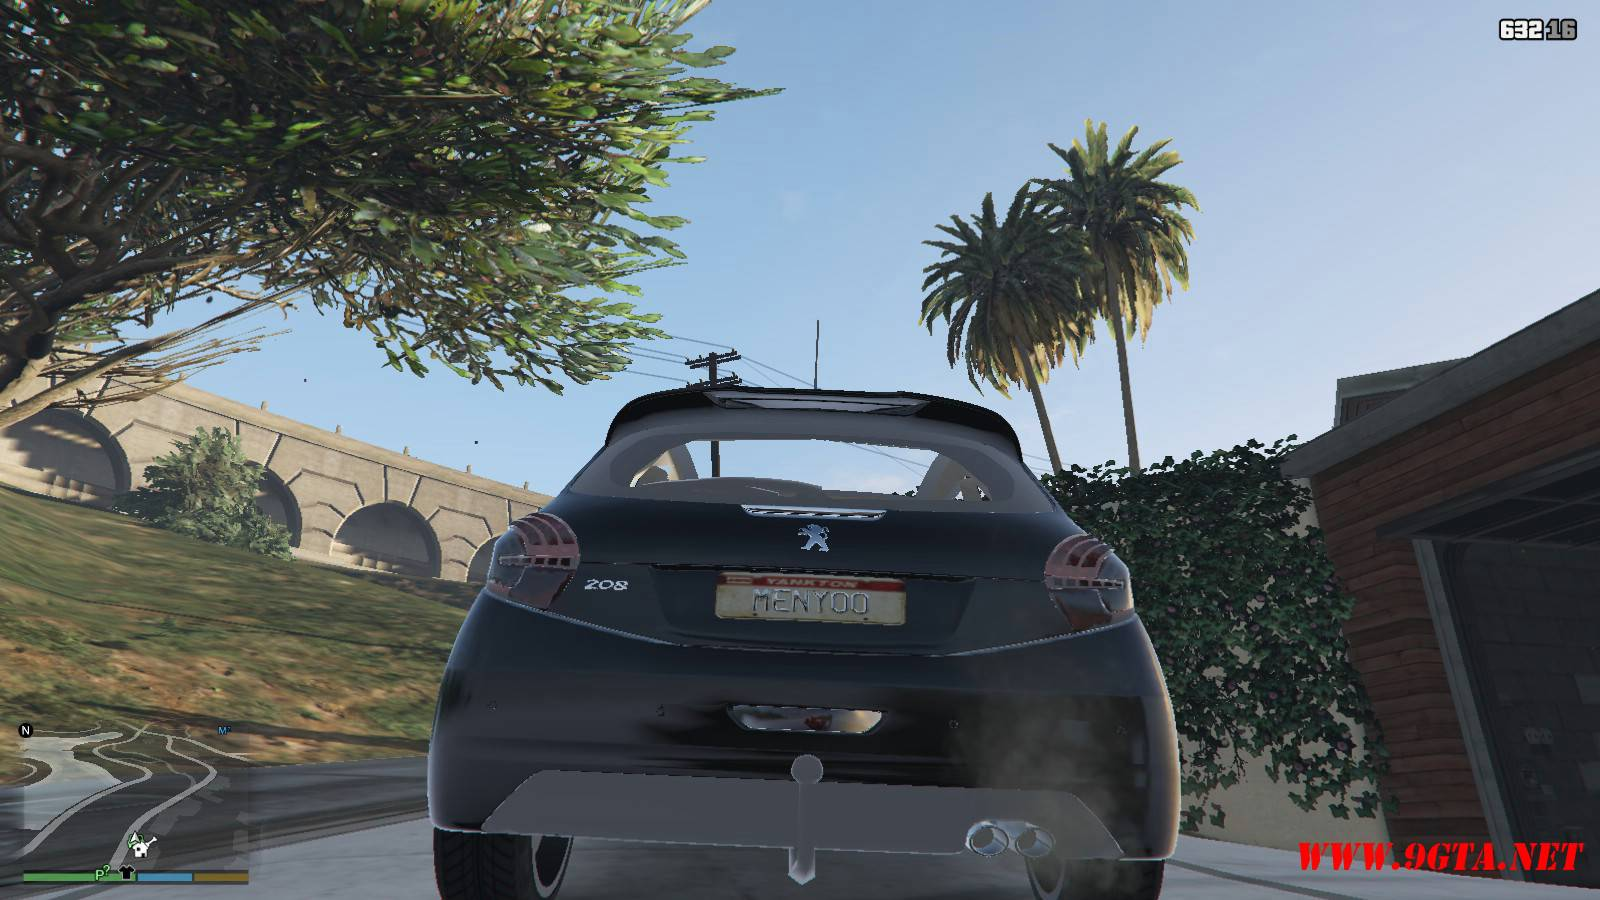 Peugeot 208 Mod For GTA5 (5)